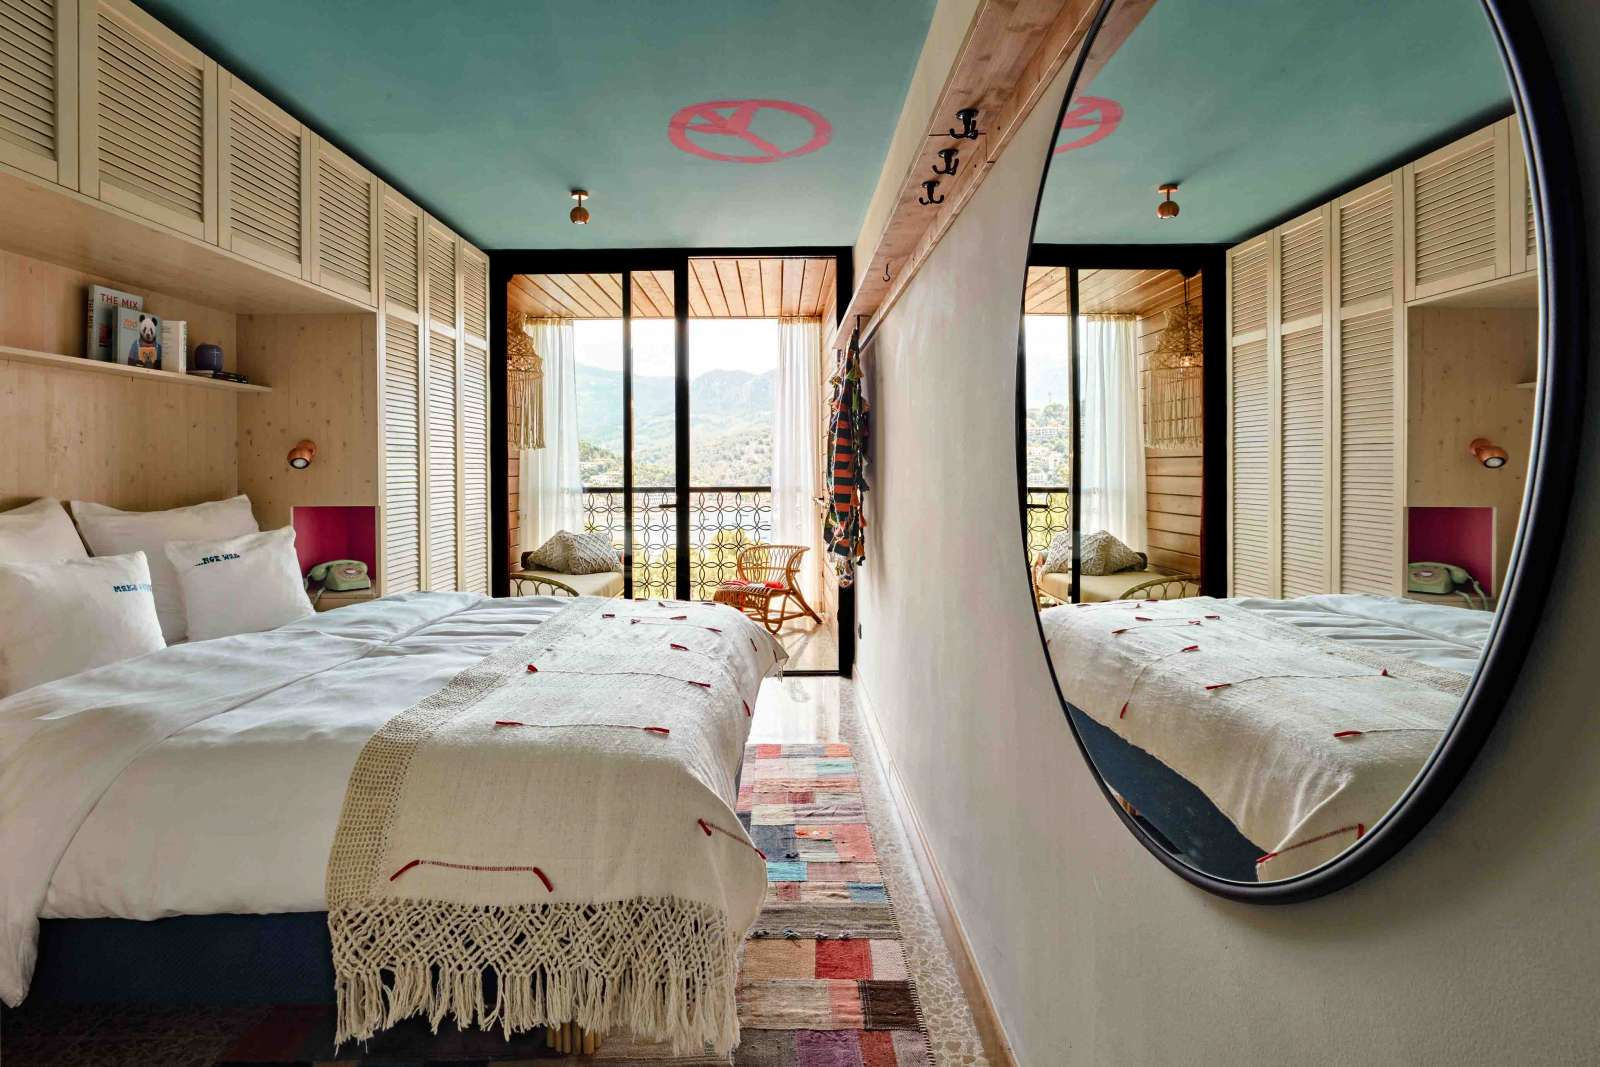 Design Interieur Hotel Bikini Island Mountain Hotels Port De Soller